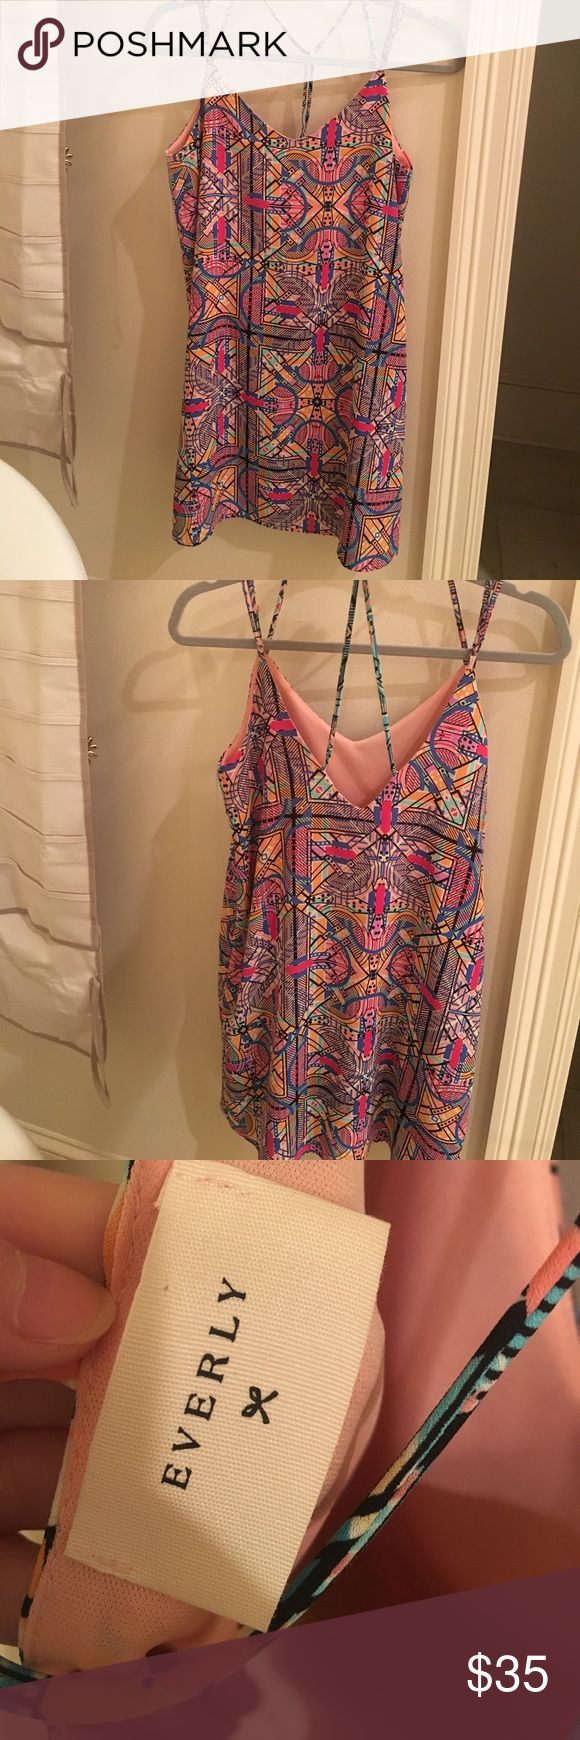 Everly Dress Size Small Worn once. Perfect condition. I am 5'1 and it was a couple inches above the knee Everly Dresses Midi